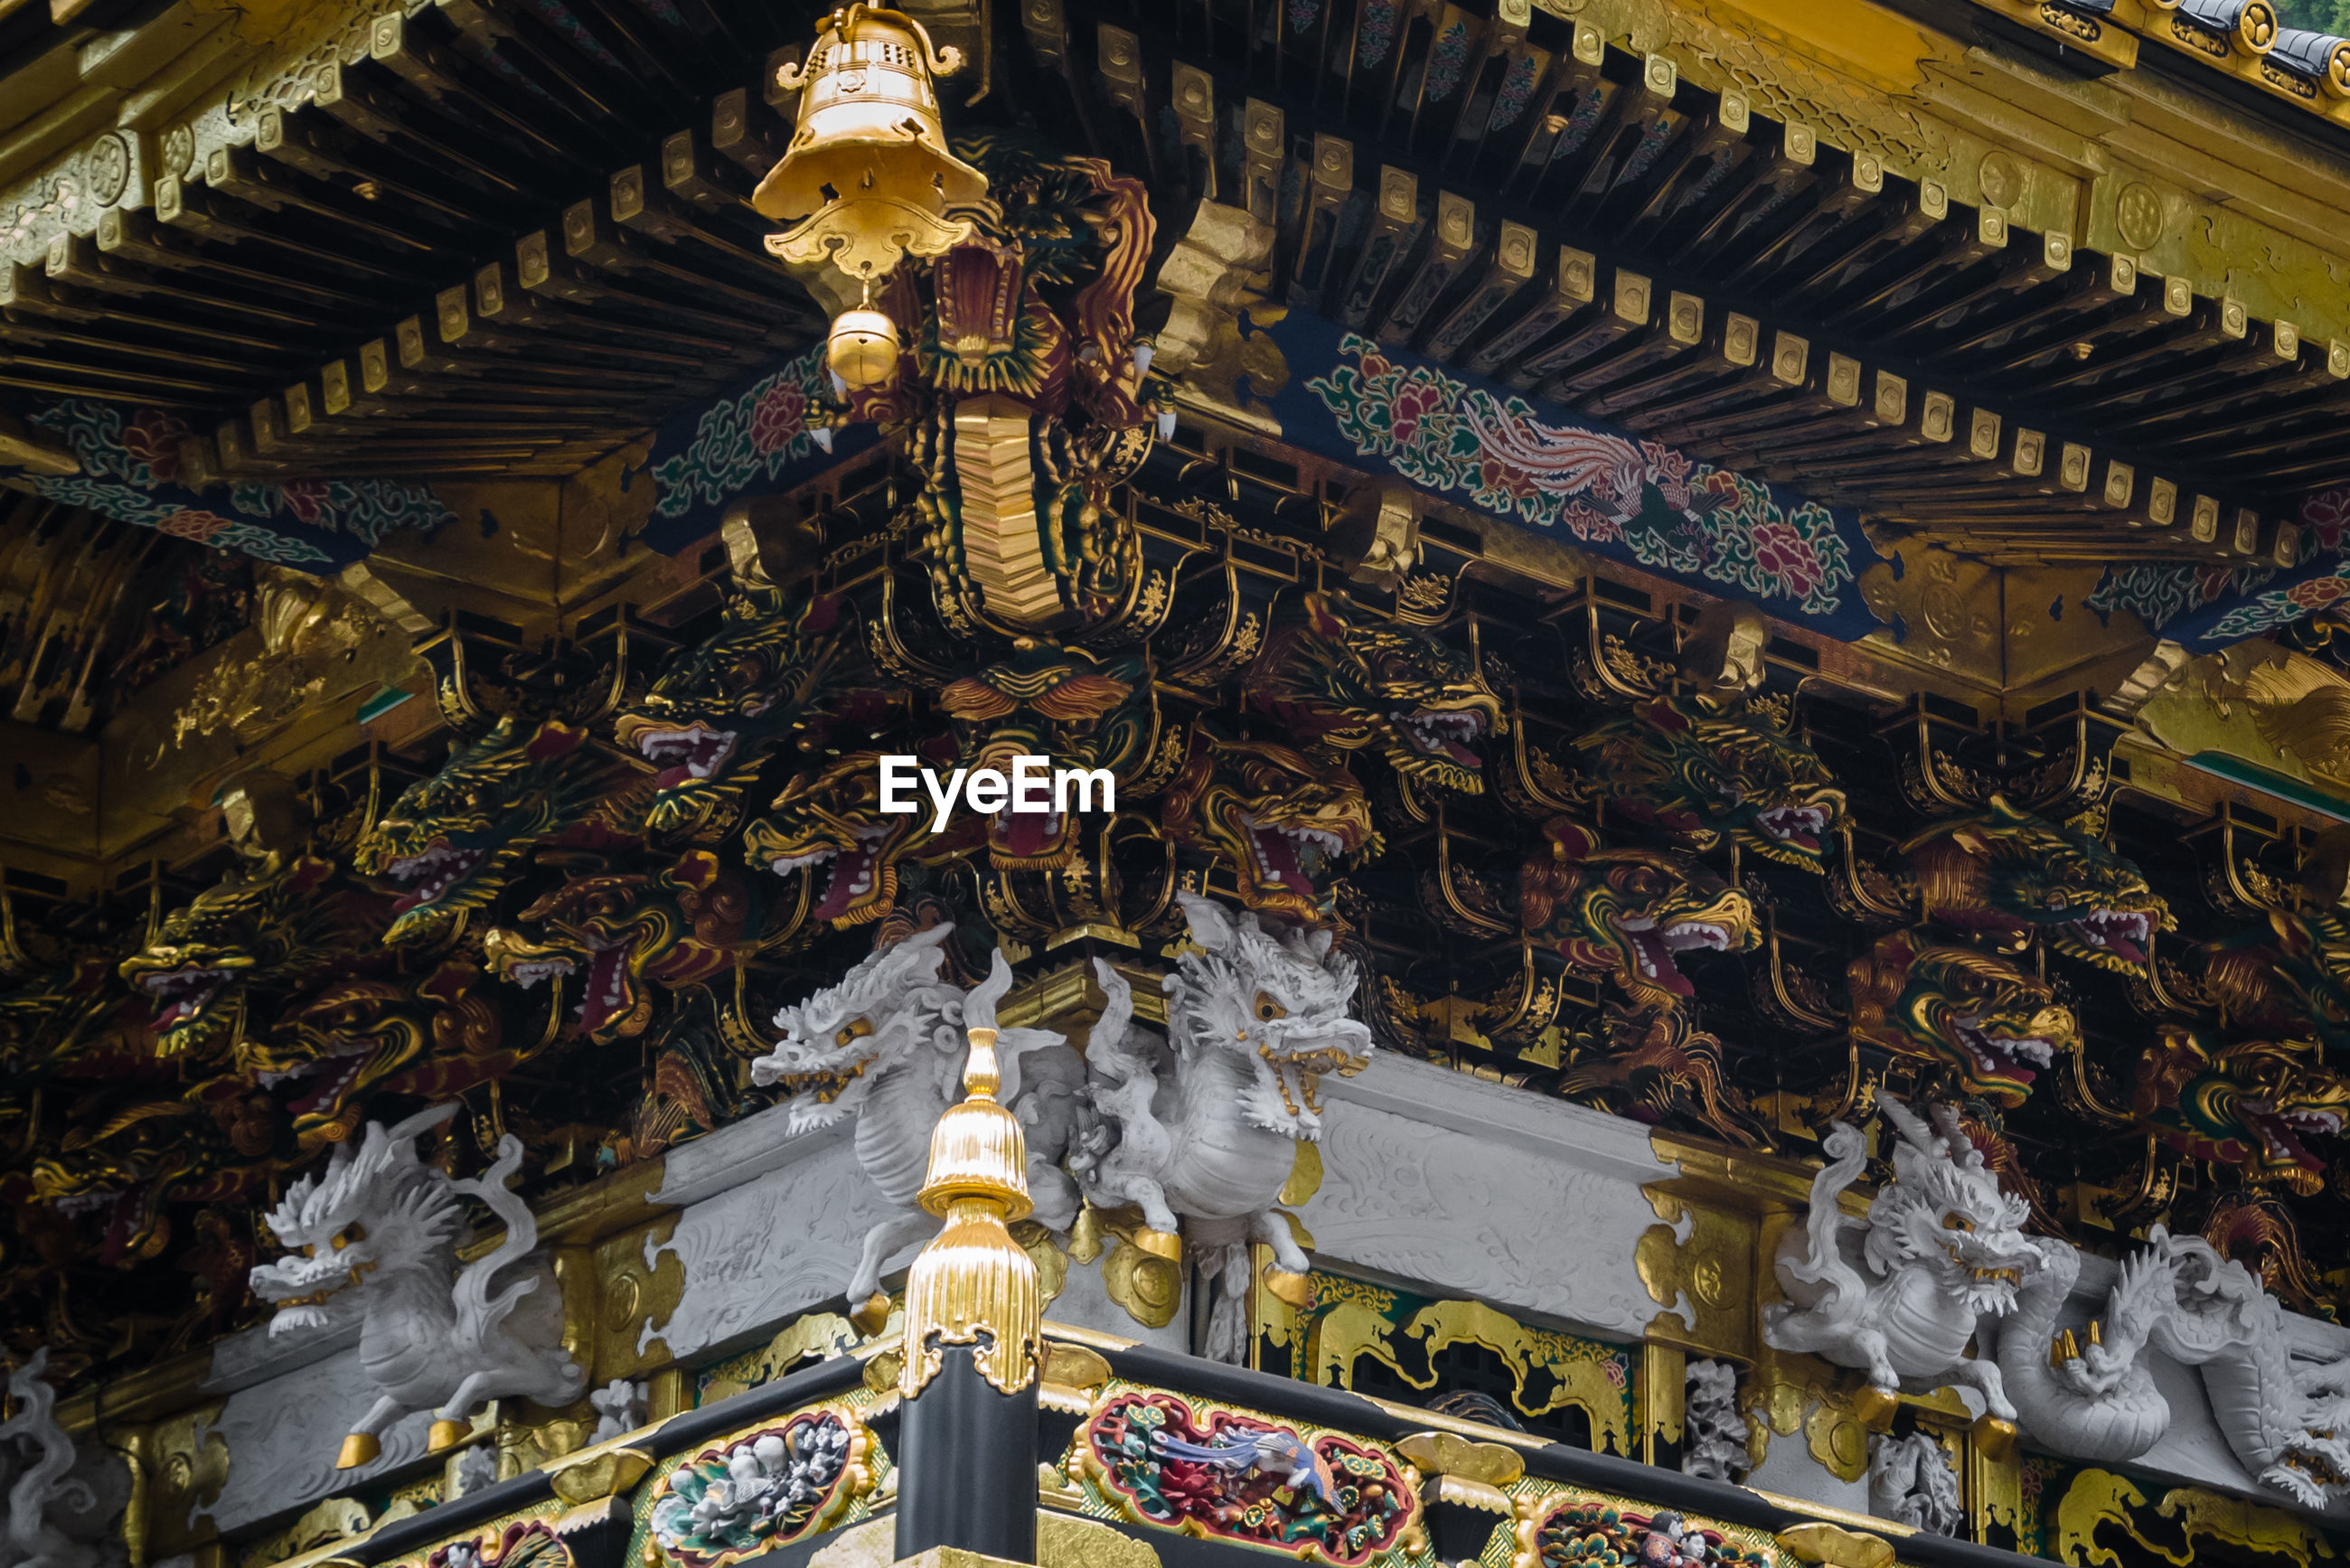 The famous toshogu gate in nikko, japan